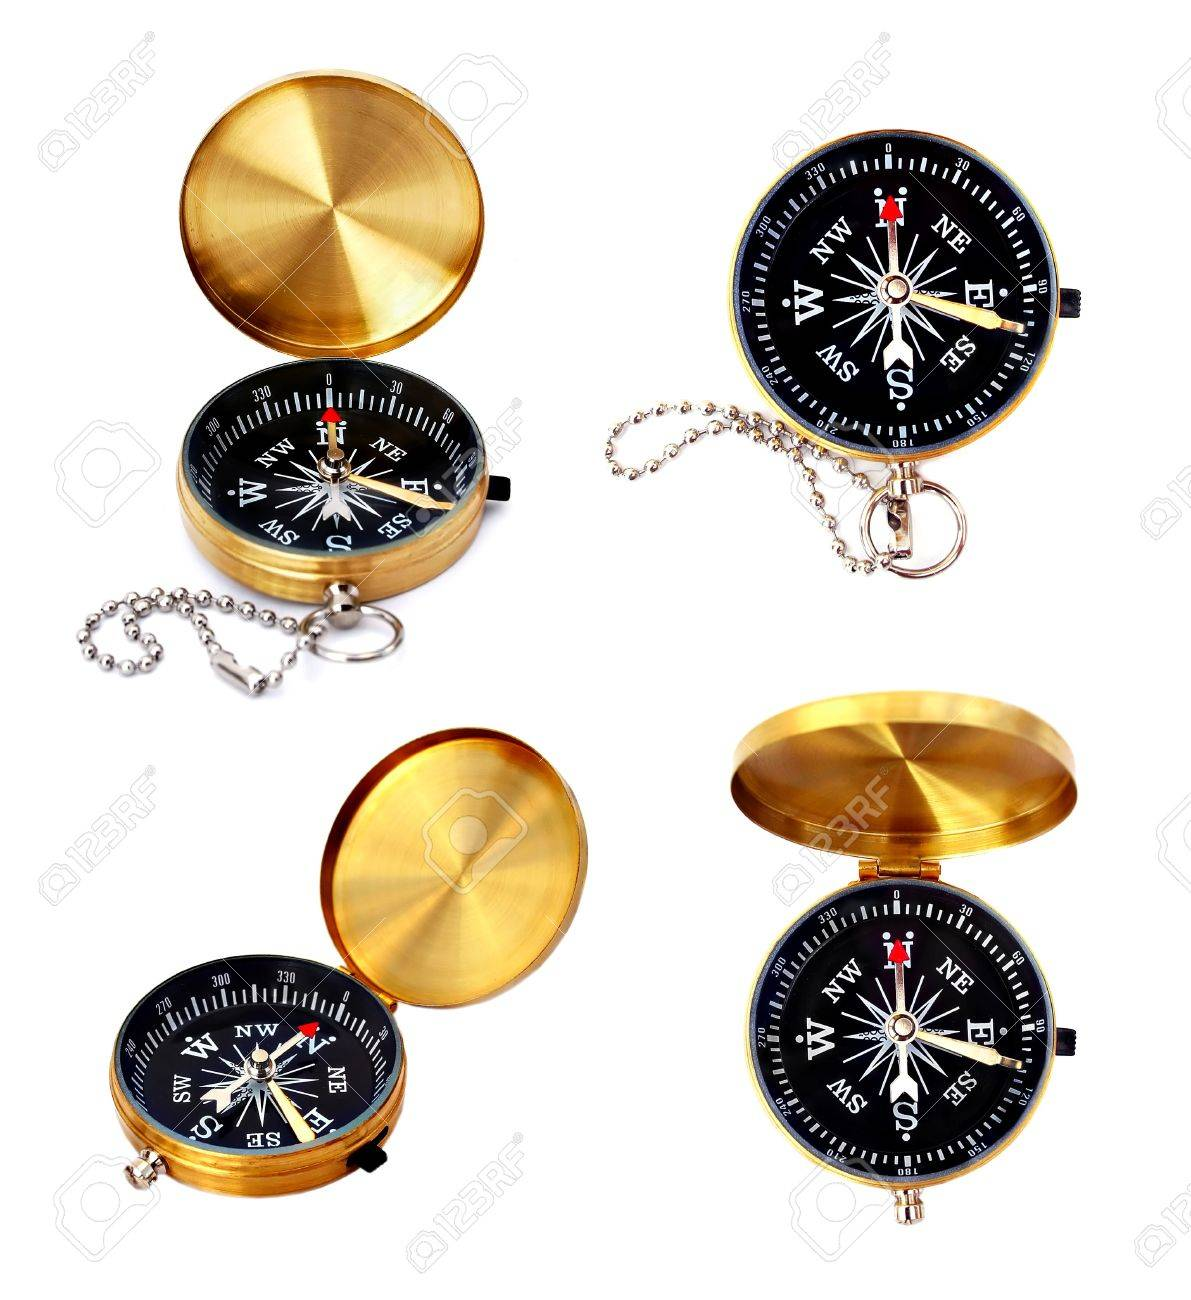 Golden compass set isolated on white Stock Photo - 7402442